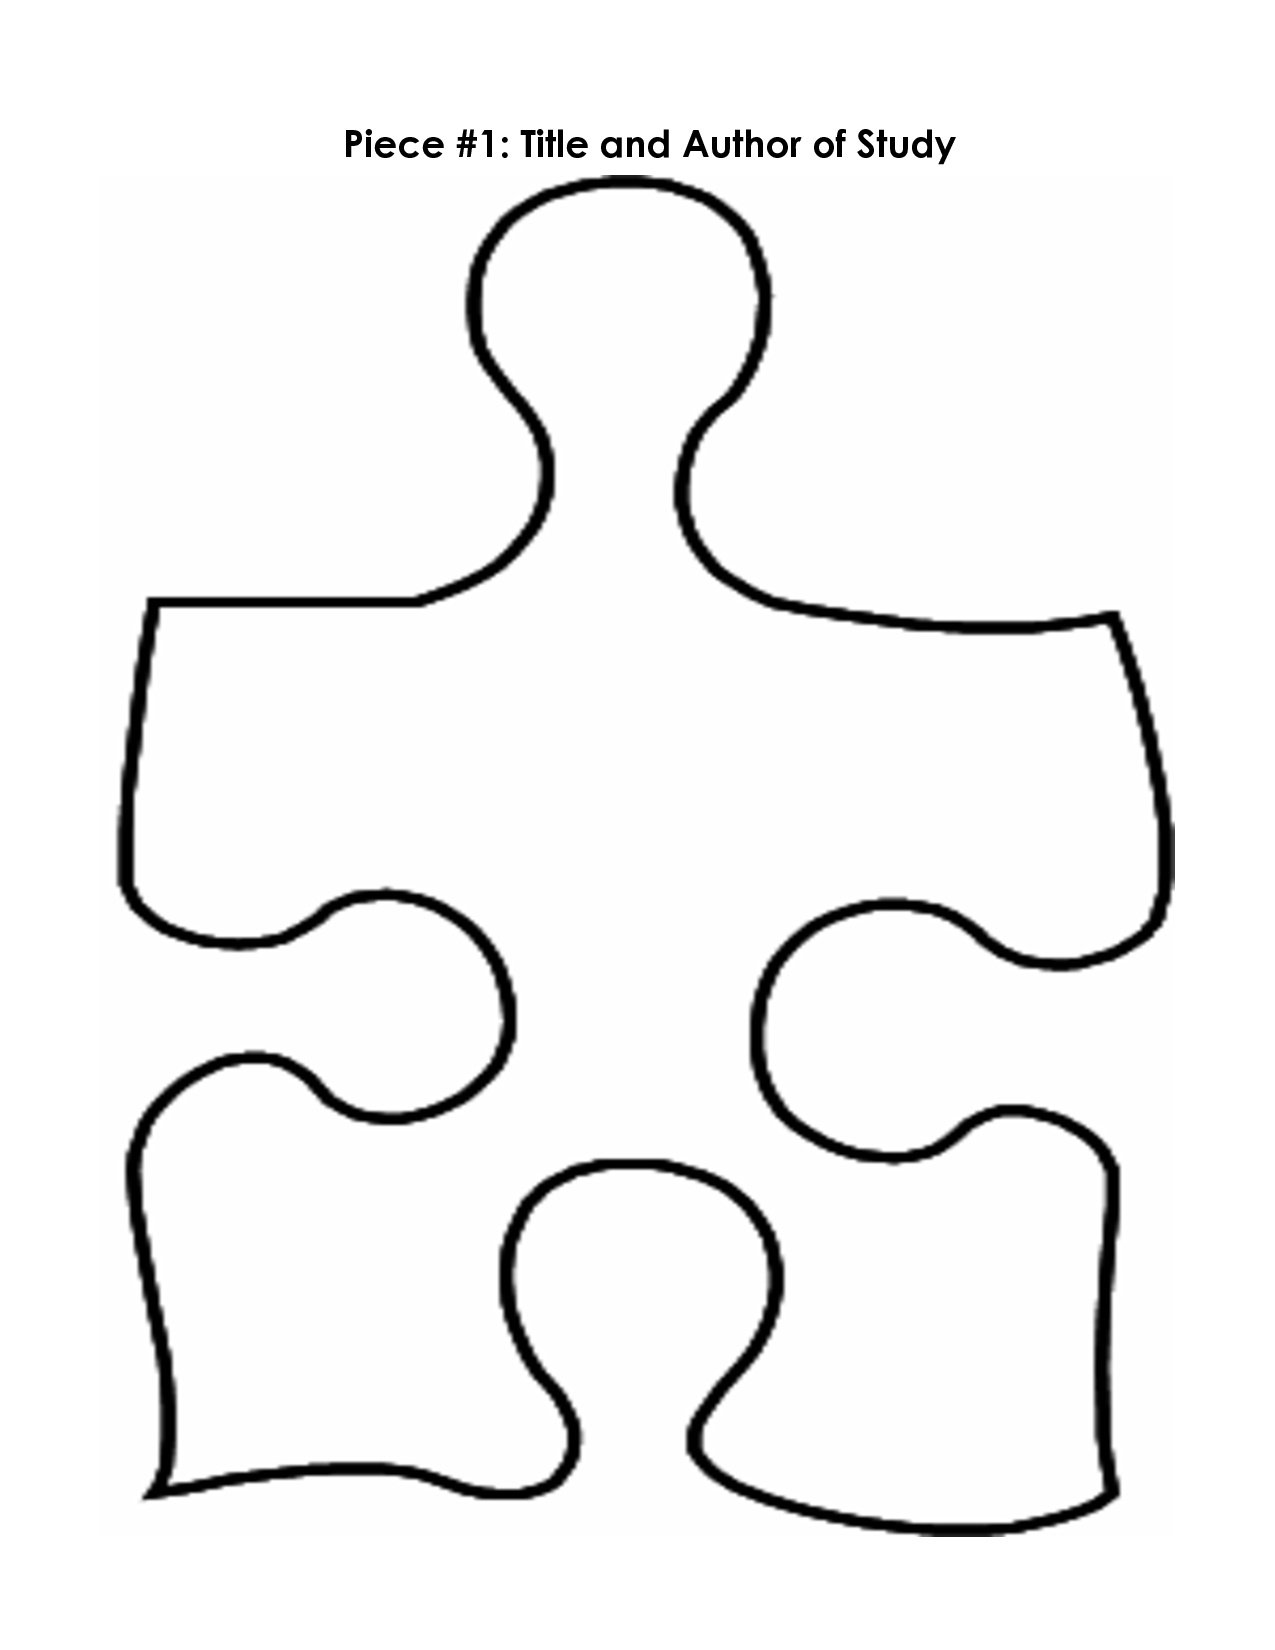 Puzzle Piece Mystery Book Template Pp   Printables   Puzzle Piece - Free Printable Blank Puzzle Pieces